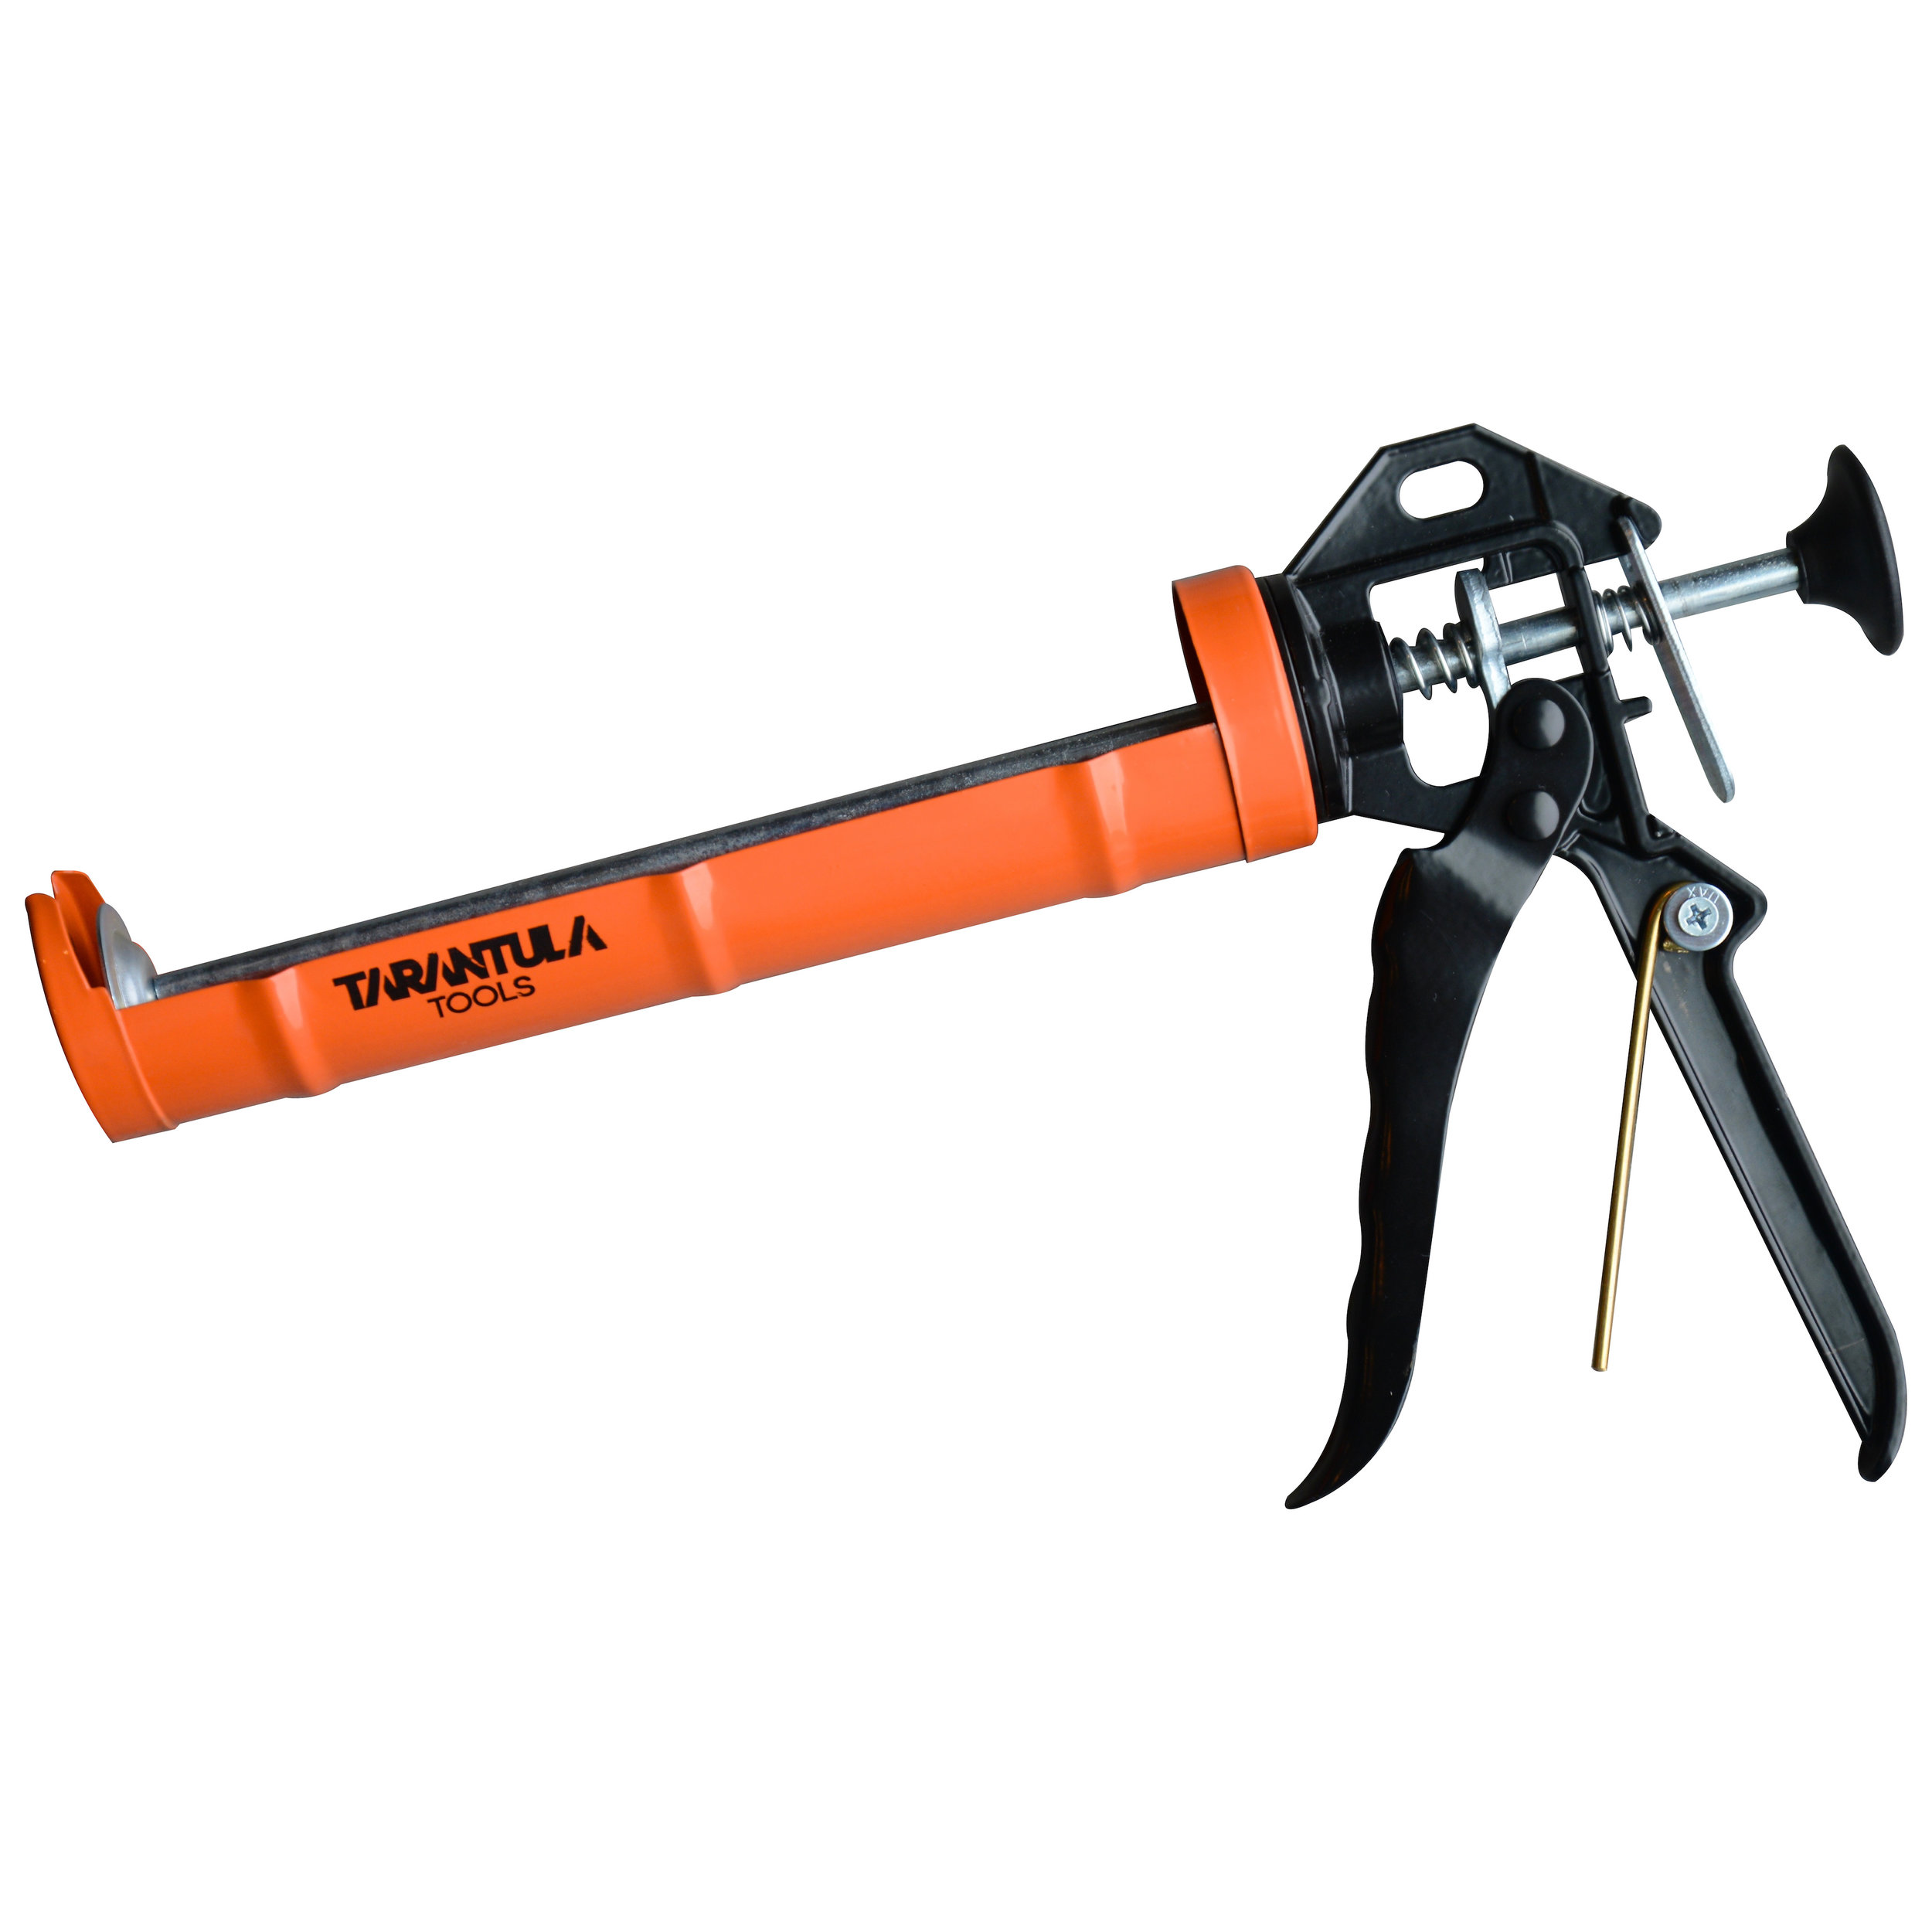 CAULK GUN -  TARANTULA TOOLS  A powder coated external finish along with galvanized internal working parts, allow our caulk gun to withstand corrosion and the test of time. Our handy seal breaker sits flush into the handle of the caulk gun and rotates on a nylon bushing, making it easy to dive into a new tube of material.